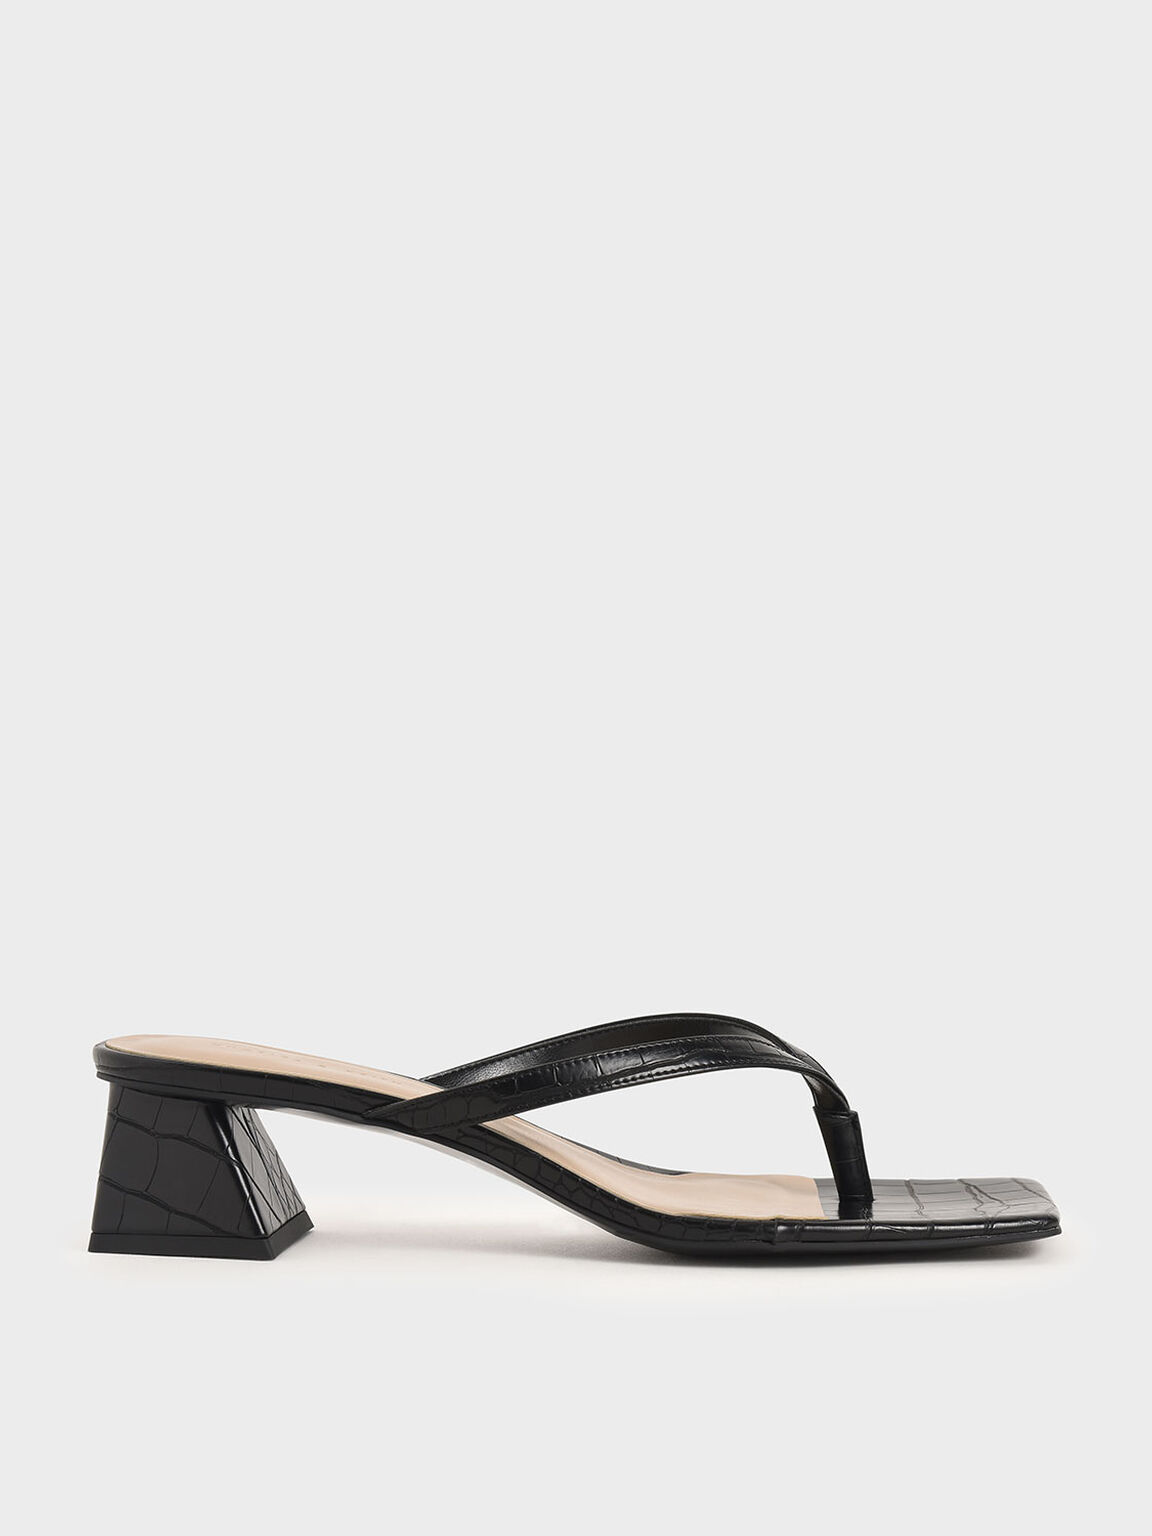 Croc-Effect Thong Heeled Sandals, Black, hi-res